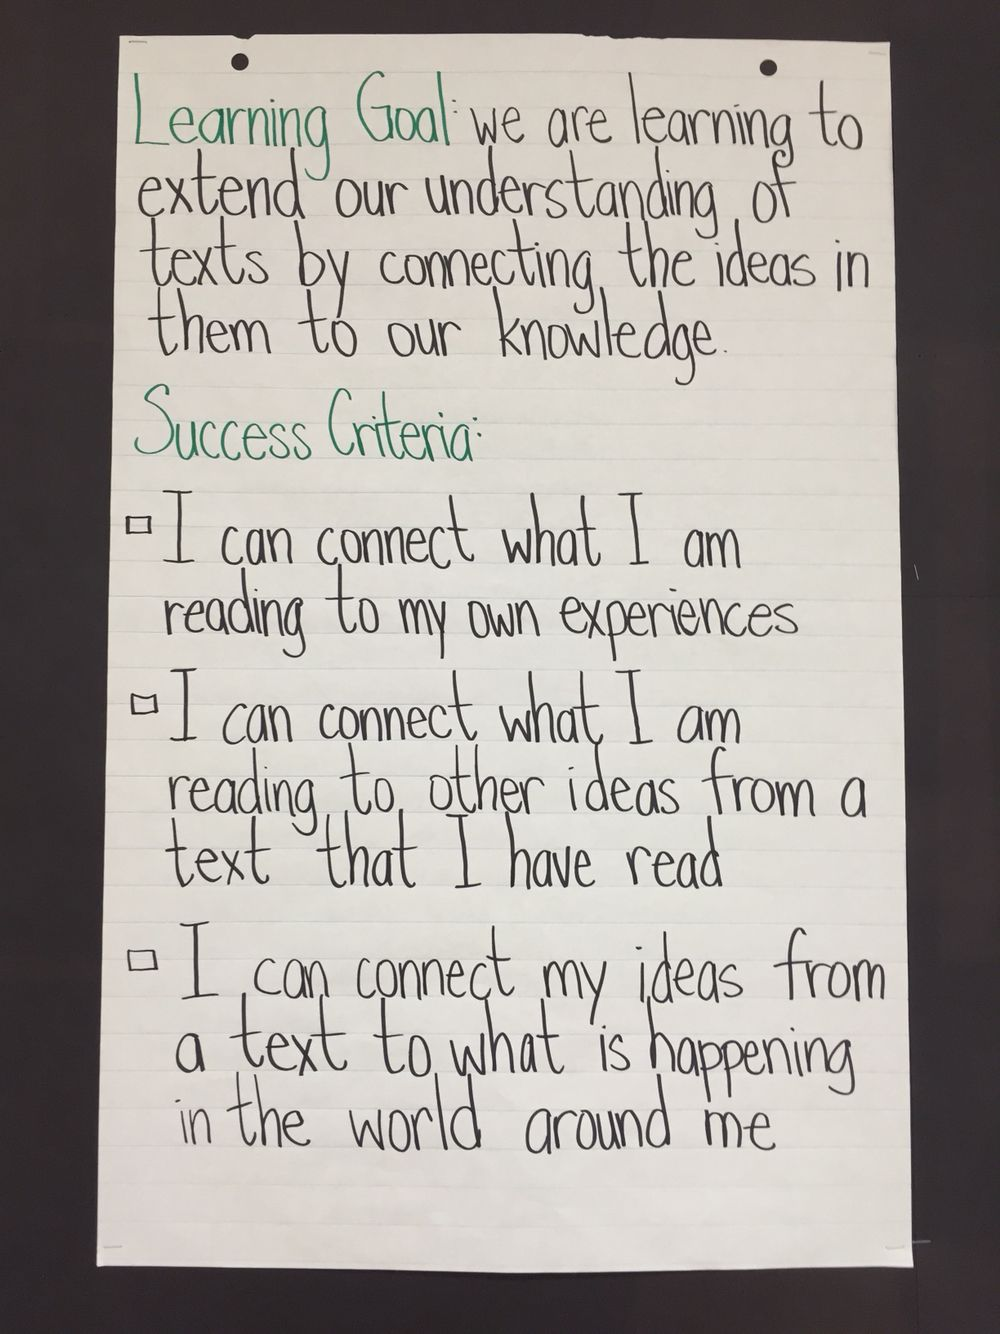 Learning Goal And Success Criteria For Making Connections Visible Learning Learning Targets Success Criteria Reading comprehension objectives for